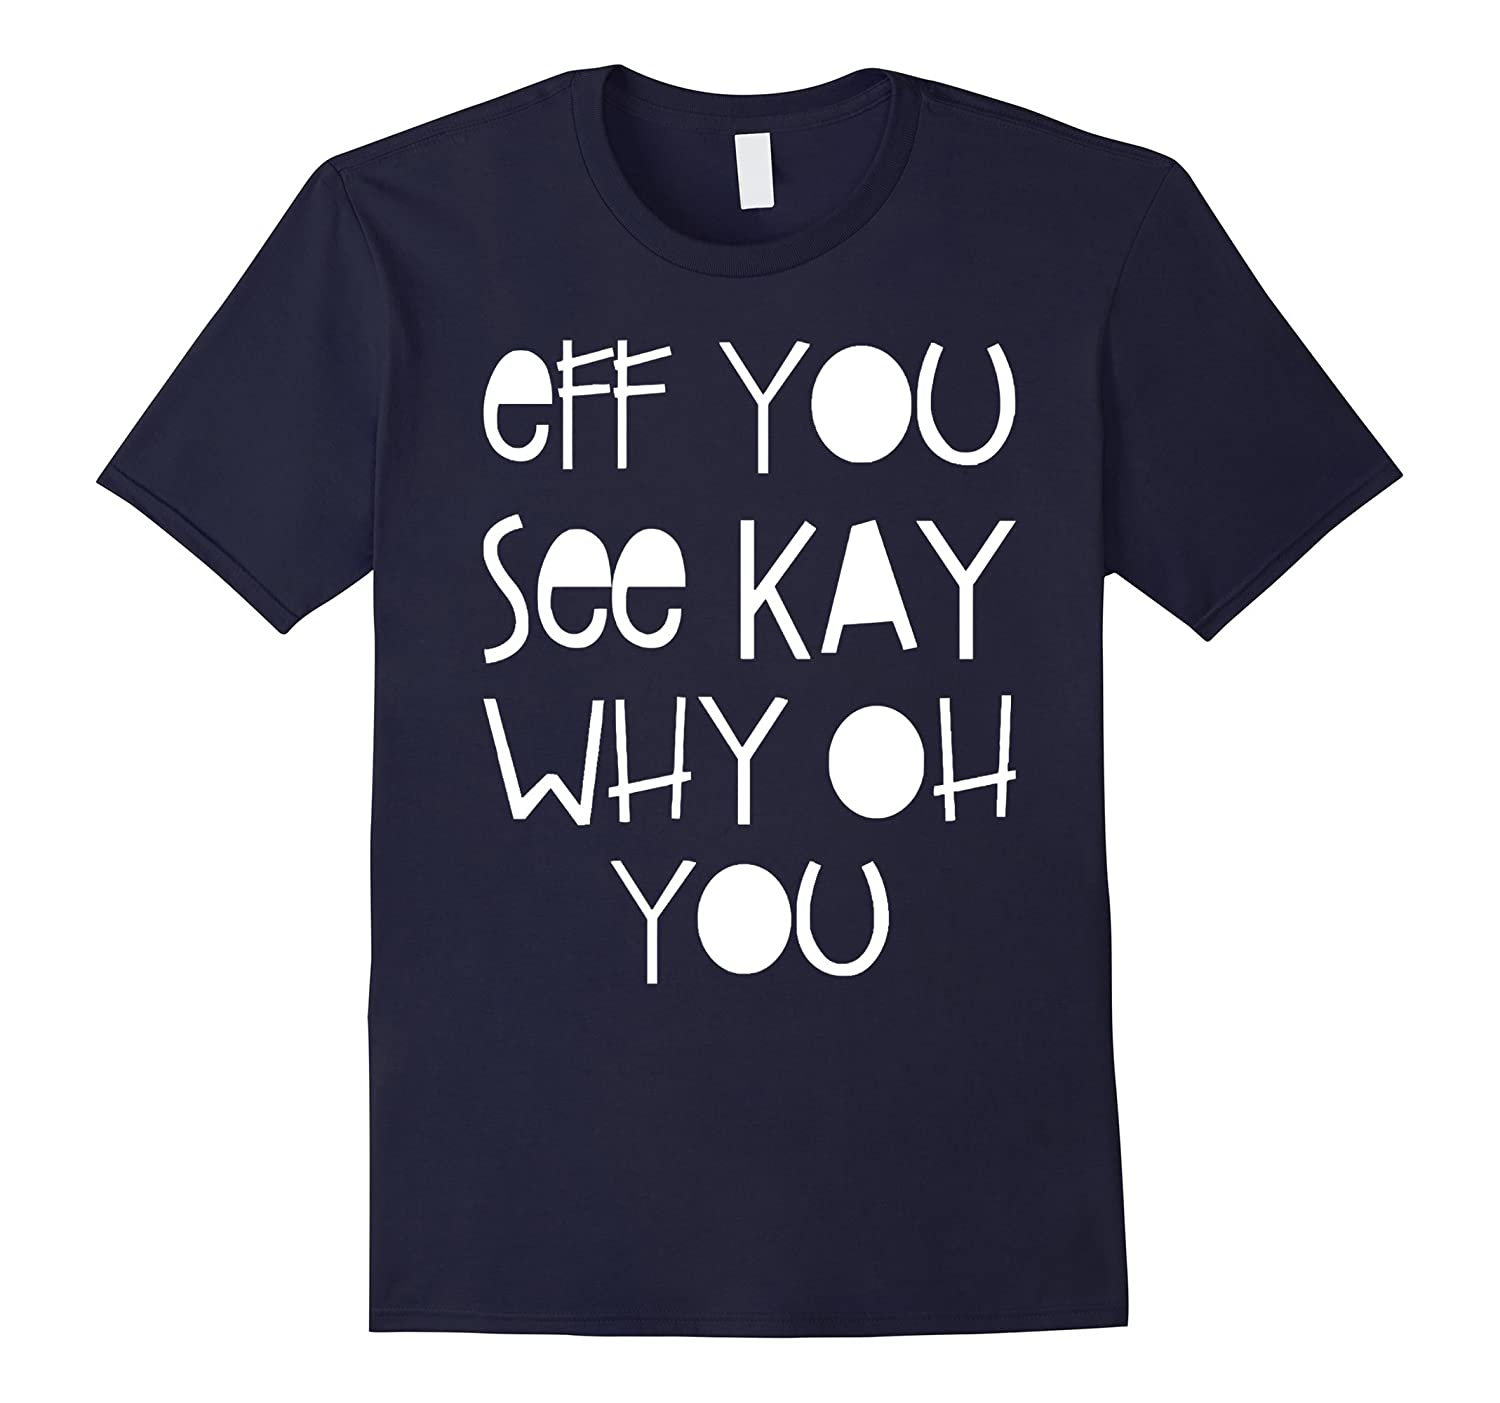 Eff You See Kay Why Oh You - Funny Tshirt-FL